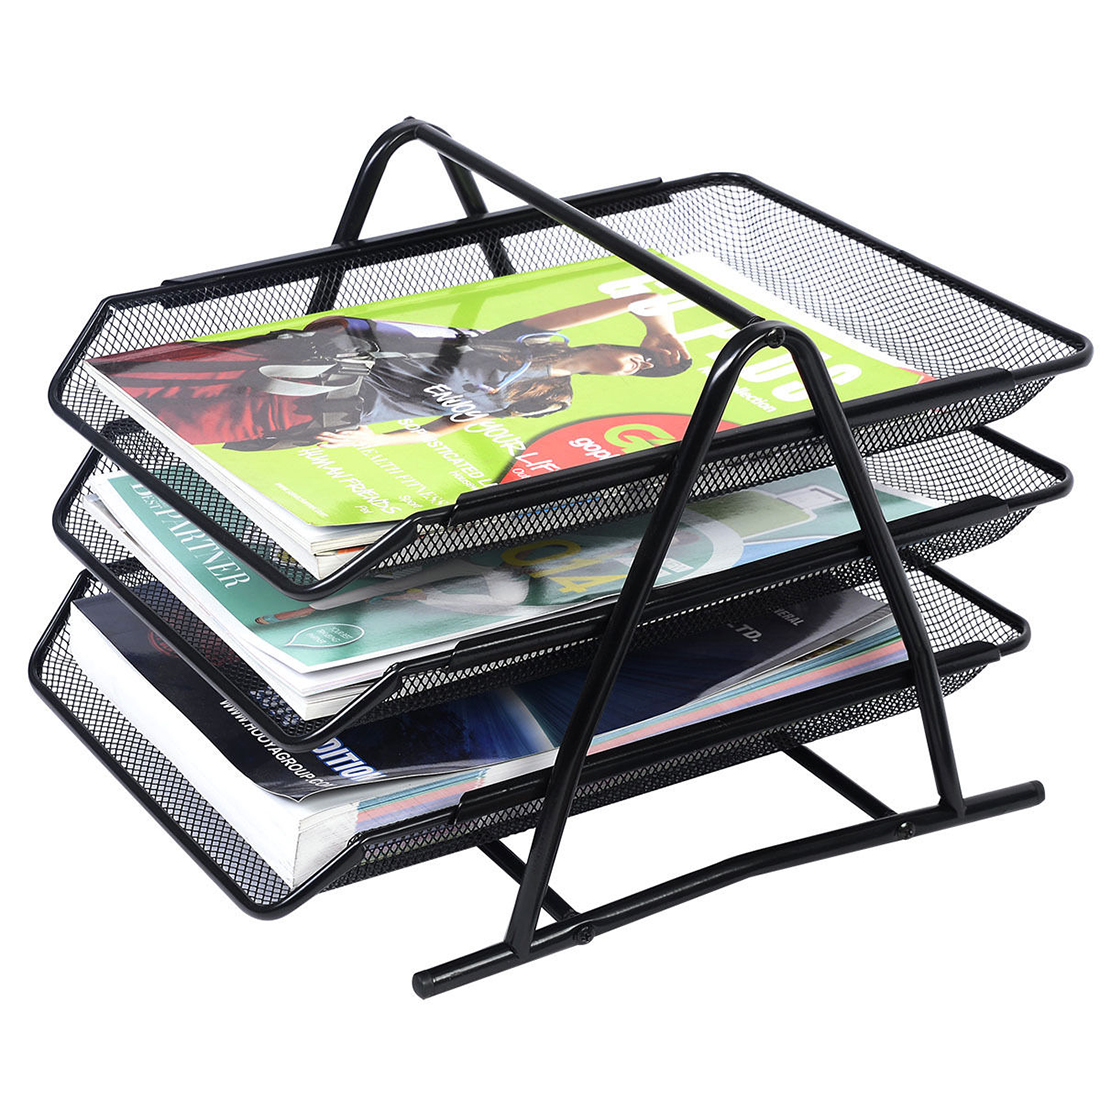 10 Pcs Of Office Filing Trays Holder A4 Doent Letter Paper Wire Mesh Storage Organiser In File Tray From School Supplies On Aliexpress